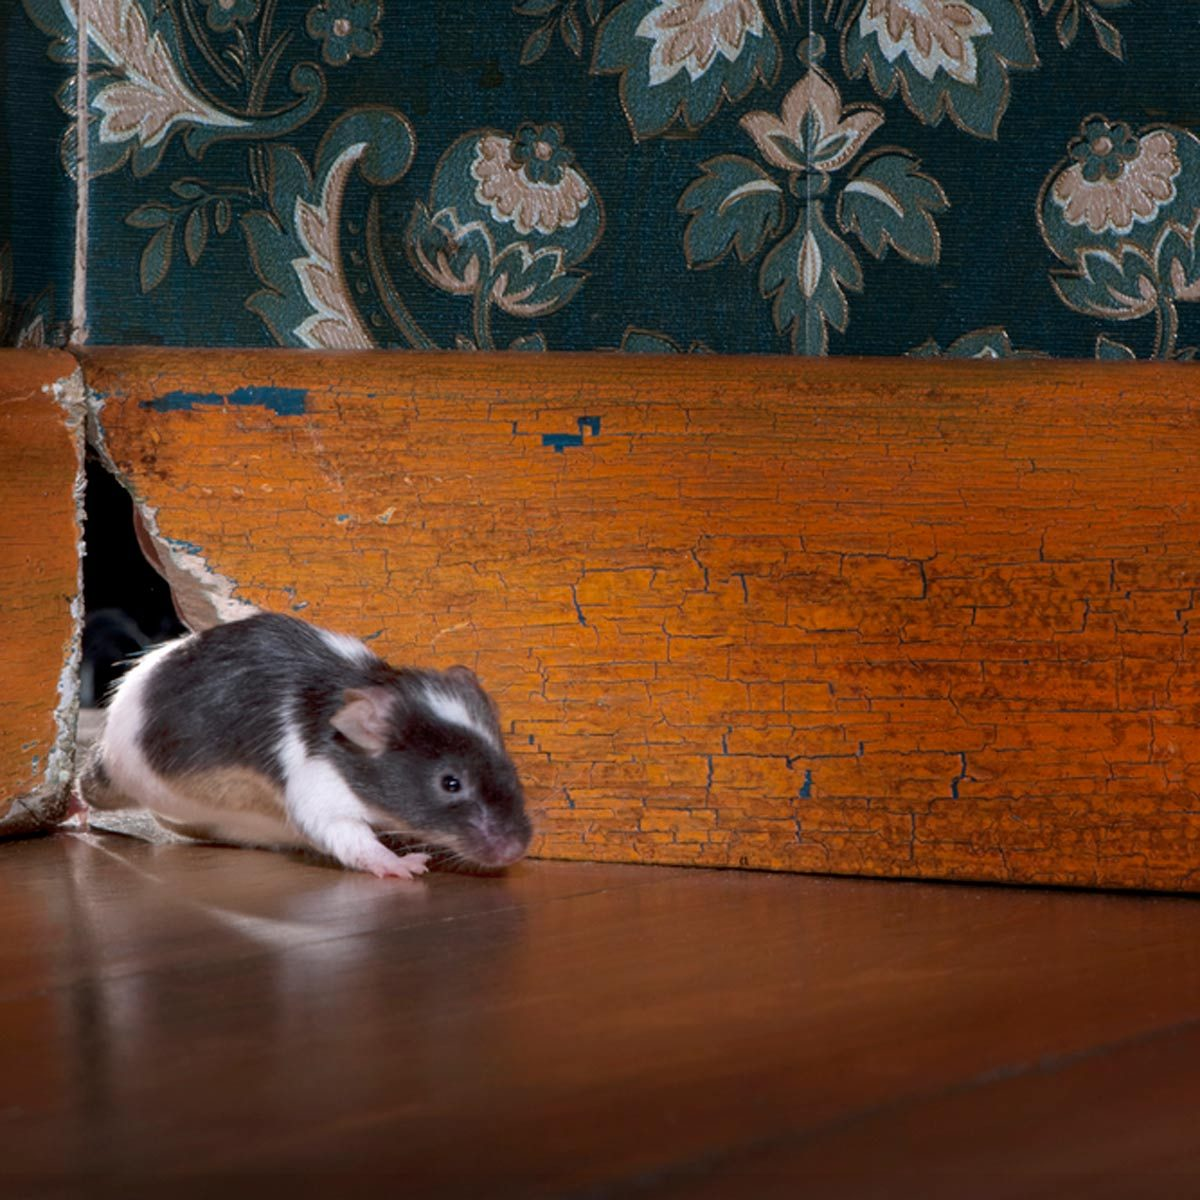 10 Crazy Things Mice Have Done in Homes | Family Handyman